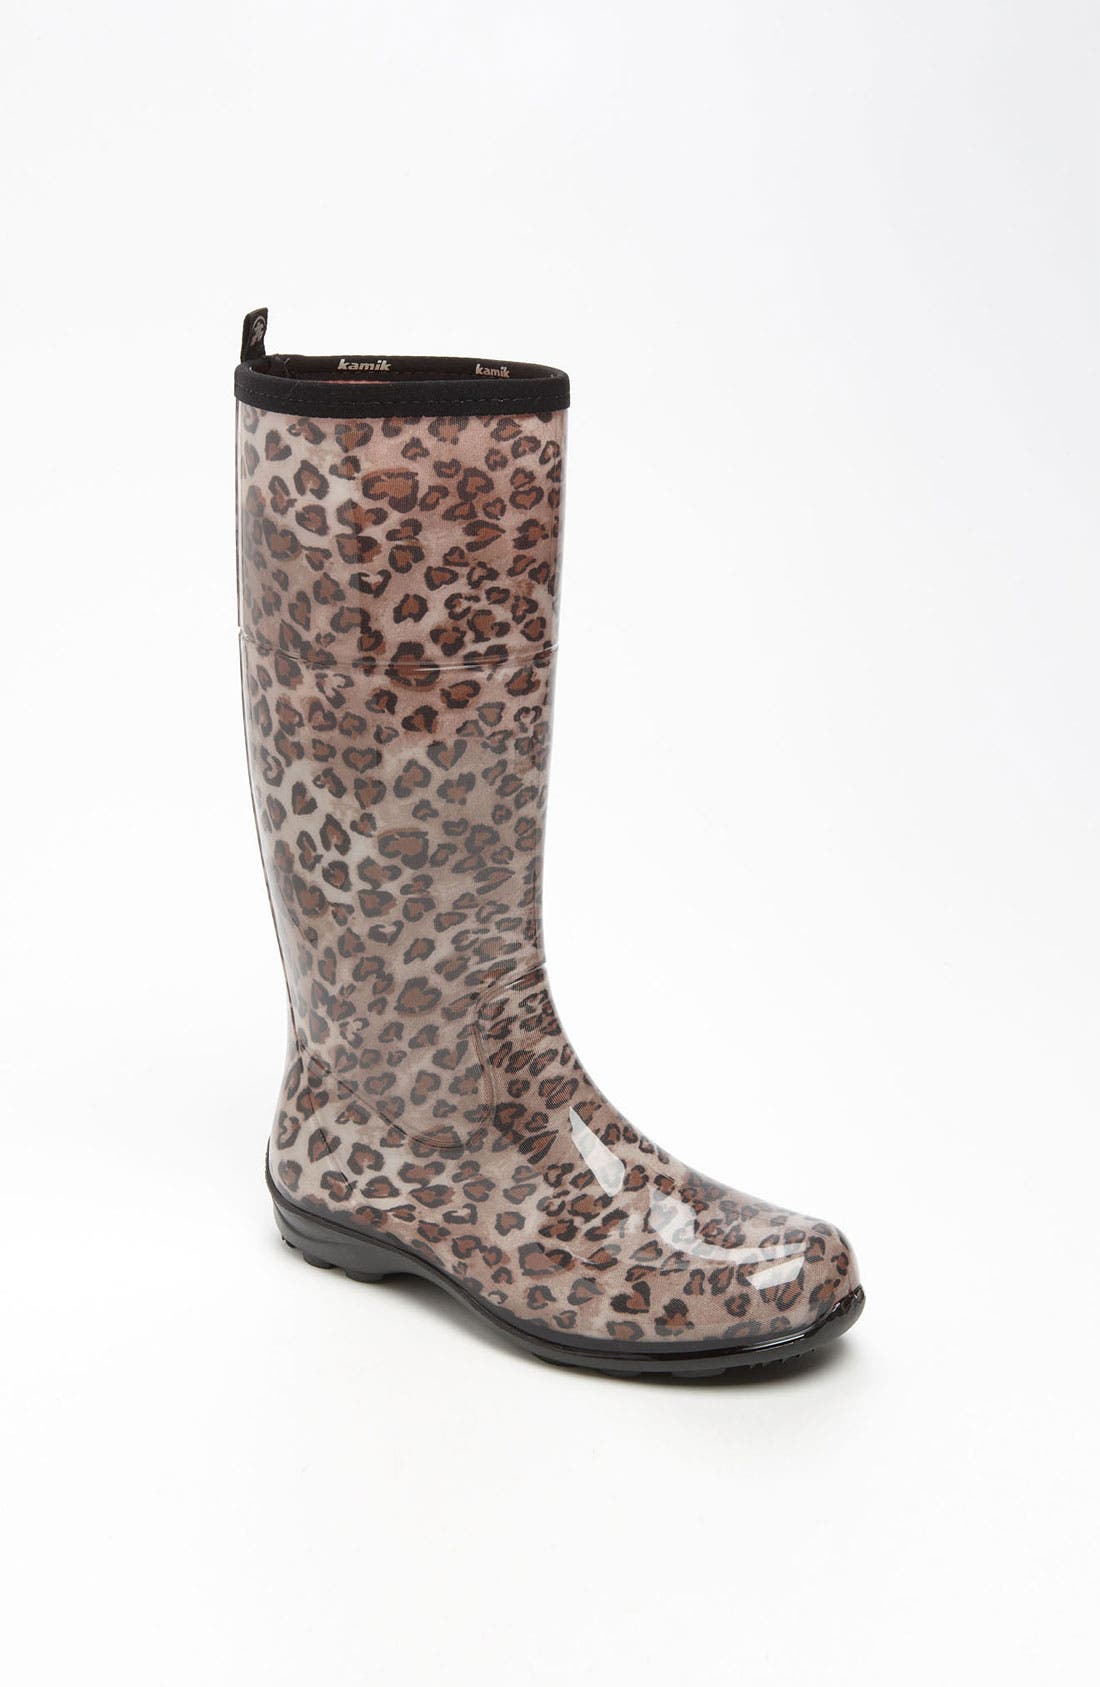 Alternate Image 1 Selected - Kamik 'Kenya' Rain Boot (Women)